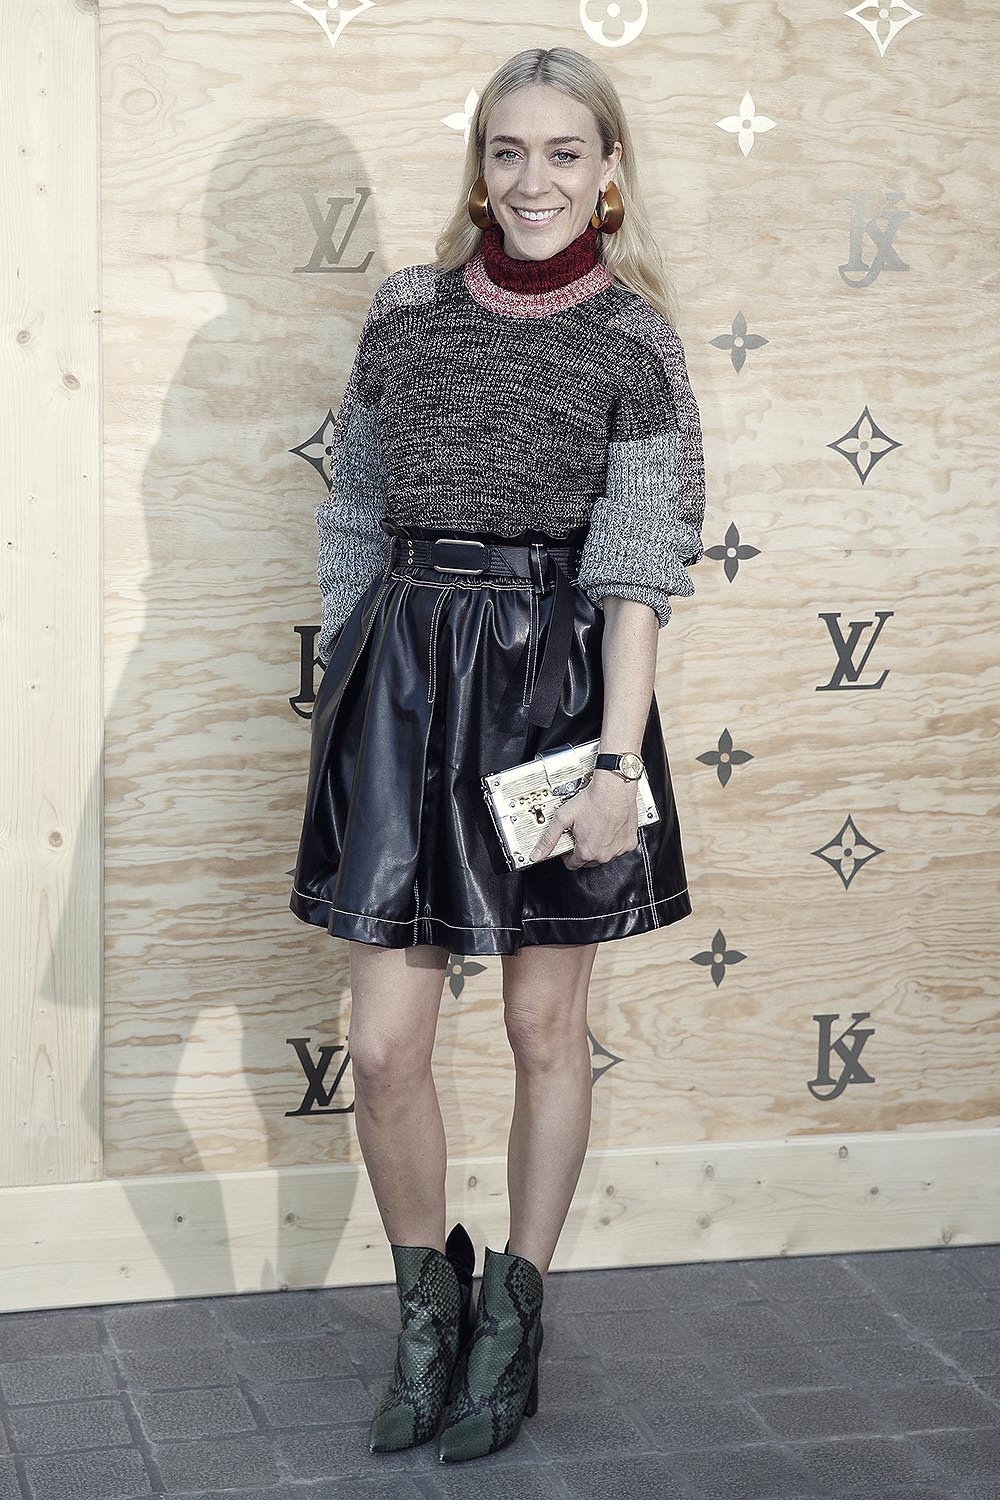 Chloe Sevigny attends Louis Vuitton dinner party